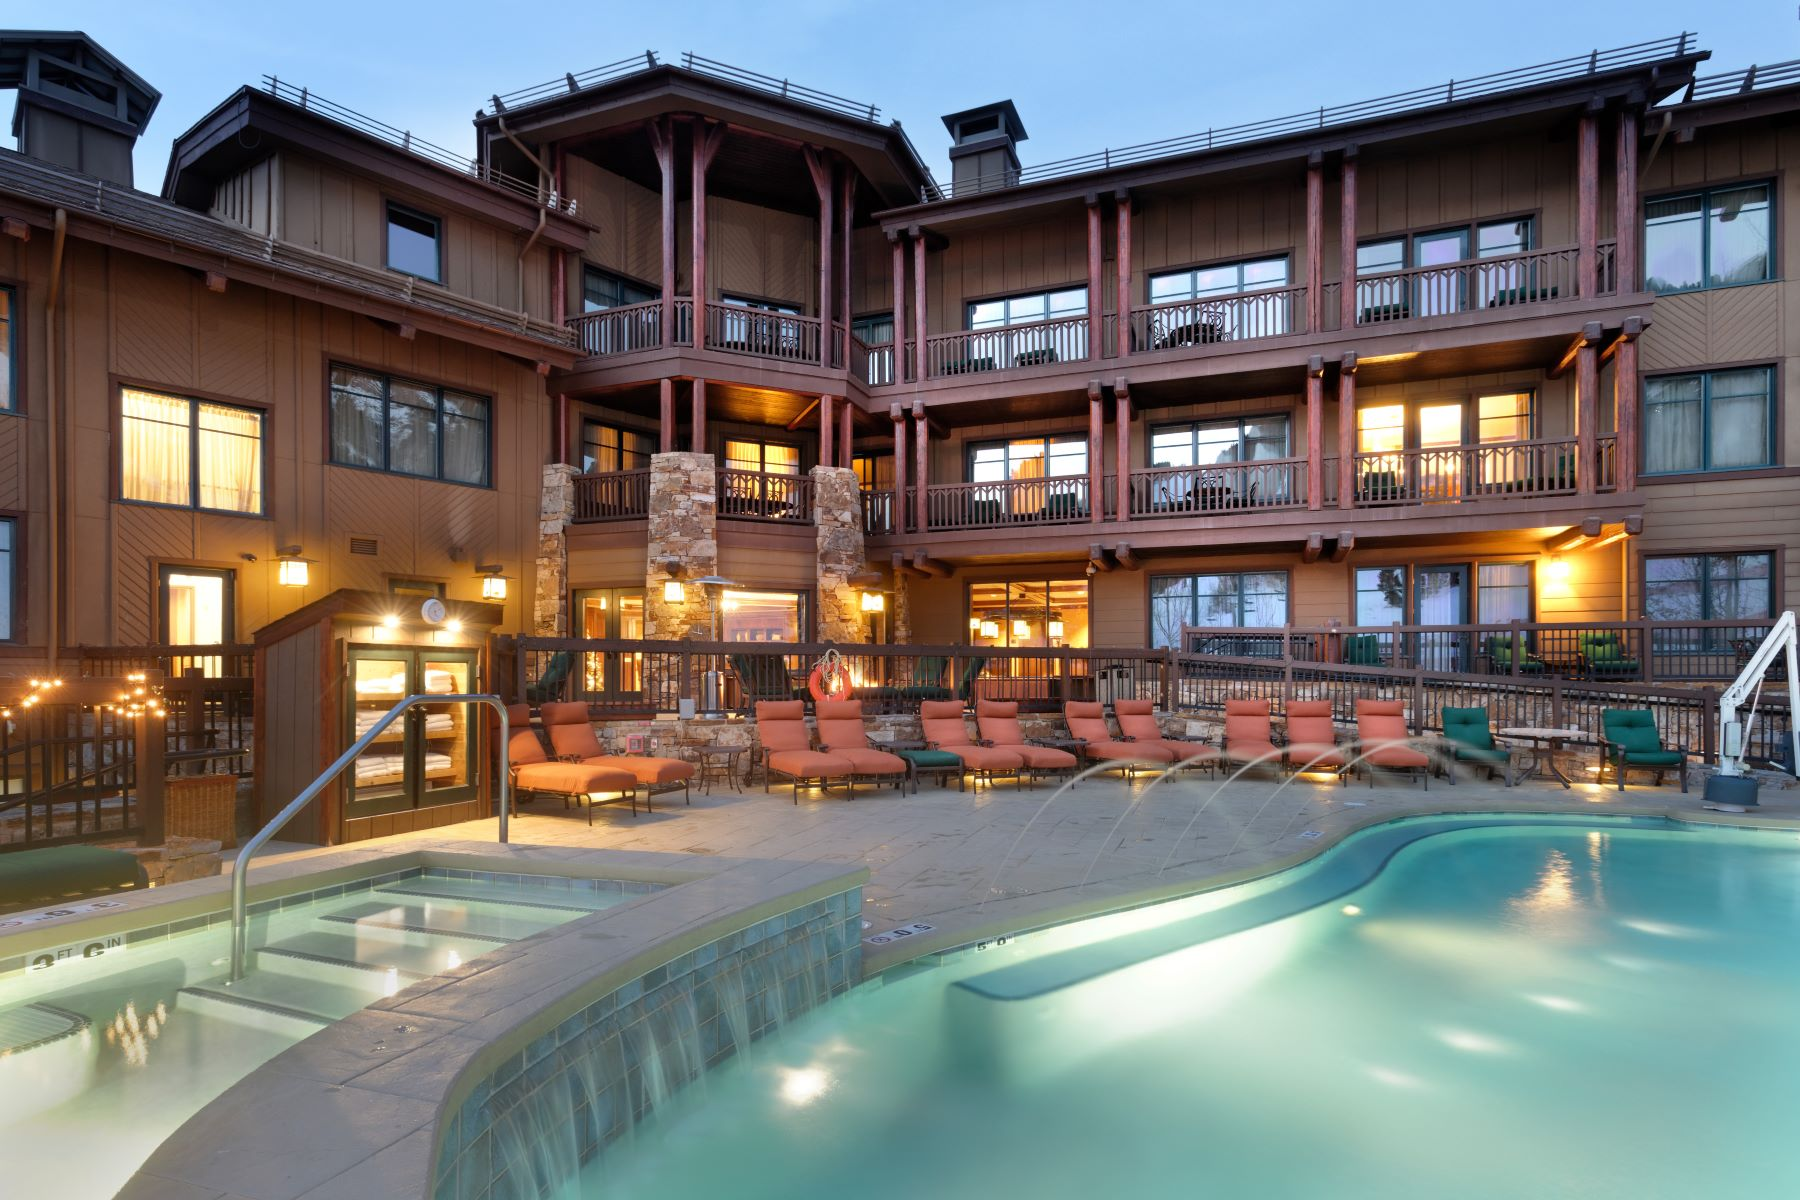 Fractional Ownership for Sale at Ritz-Carlton Club Fractional Condo Interest 0197 Prospector Road, 2406, Summer Interest 12, Ritz-Carlton Club Fractional Condo Interest Aspen, Colorado, 81611 United States